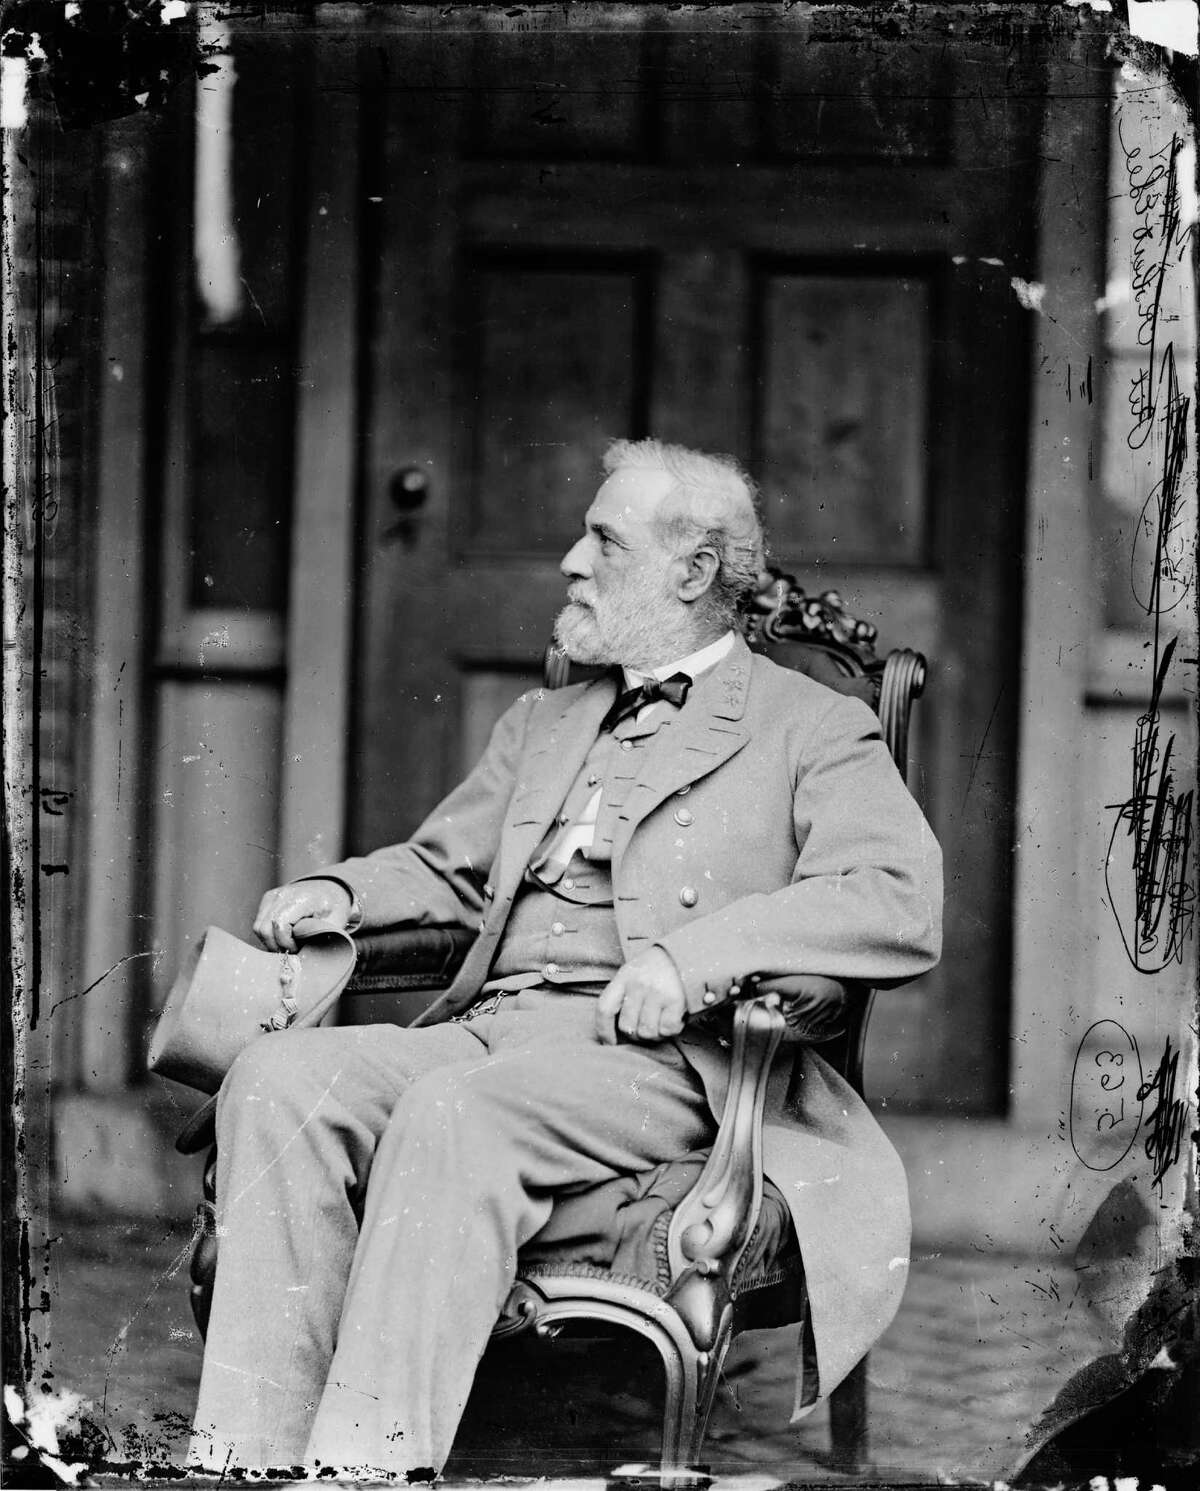 ... Robert E. Lee, who commanded the Confederate Army during the Civil War. Before the war, he spent some time in San Antonio while in the U.S. Army, according to the Handbook of Texas. The school was renamed Legacy of Educational Excellence High School starting the fall of 2018.